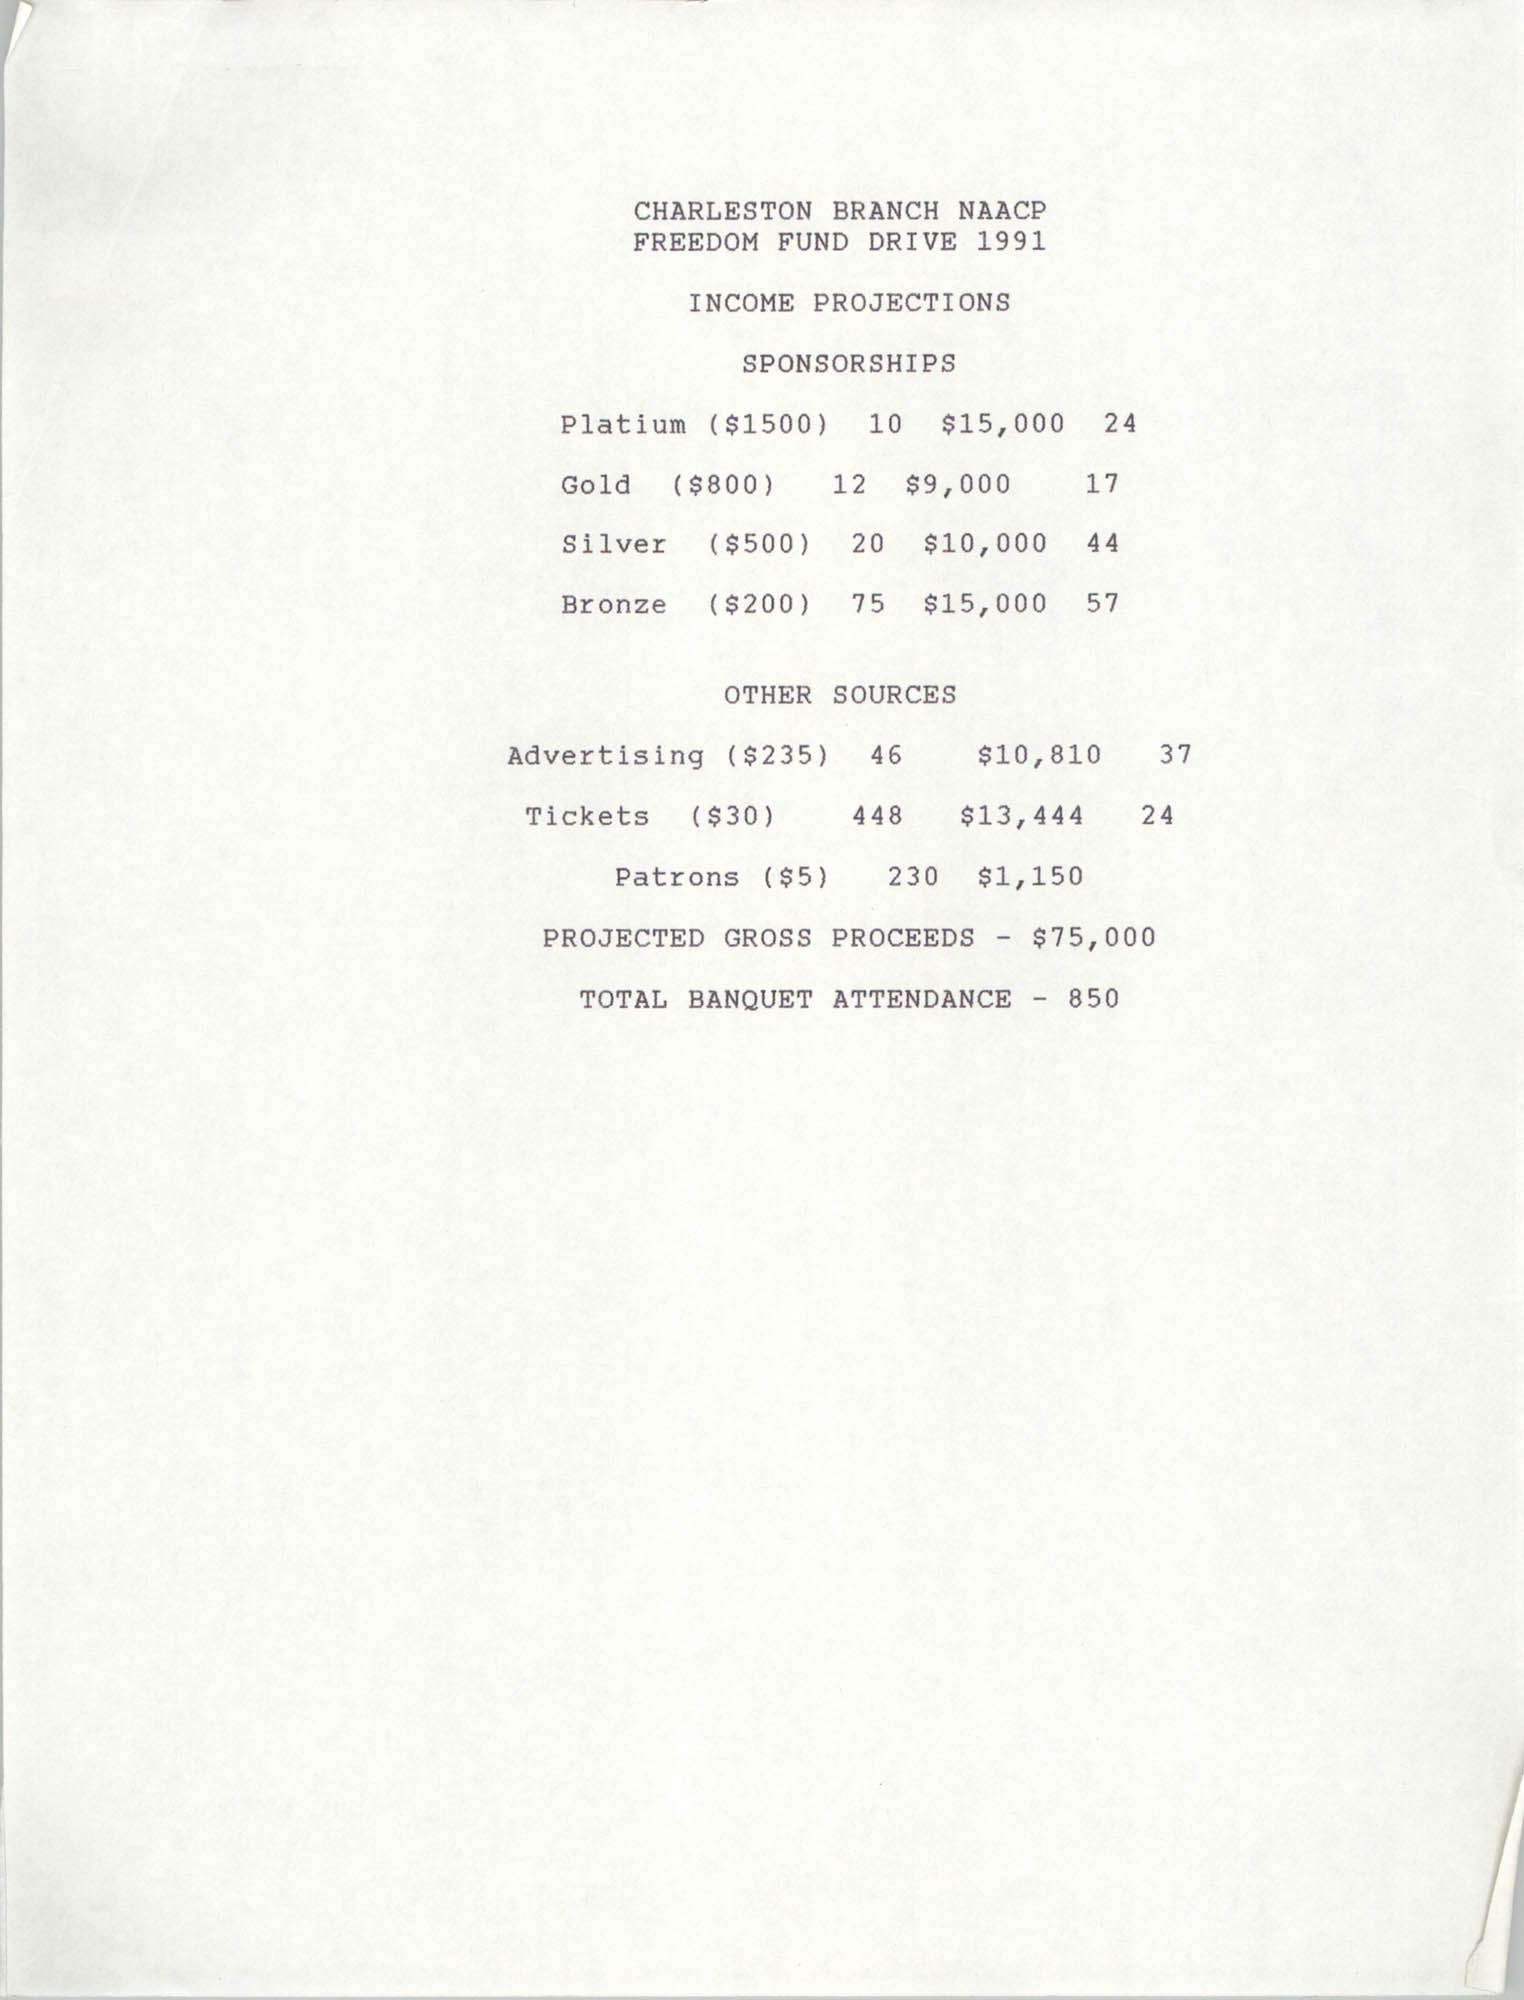 Income Projections, Freedom Fund Drive, National Association for the Advancement of Colored People, 1991